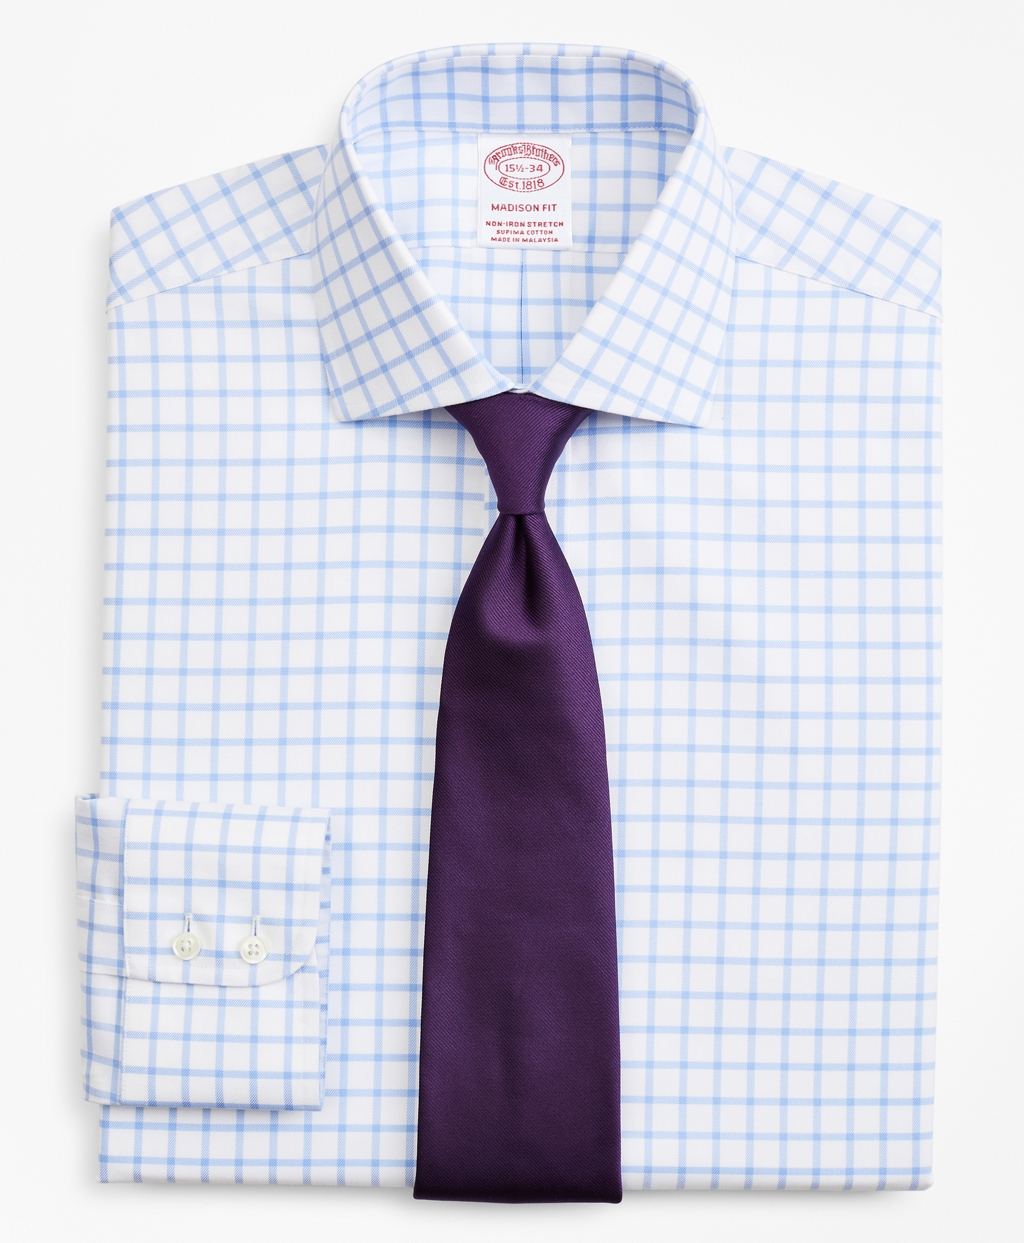 Brooksbrothers Stretch Madison Relaxed-Fit Dress Shirt, Non-Iron Twill English Collar Grid Check